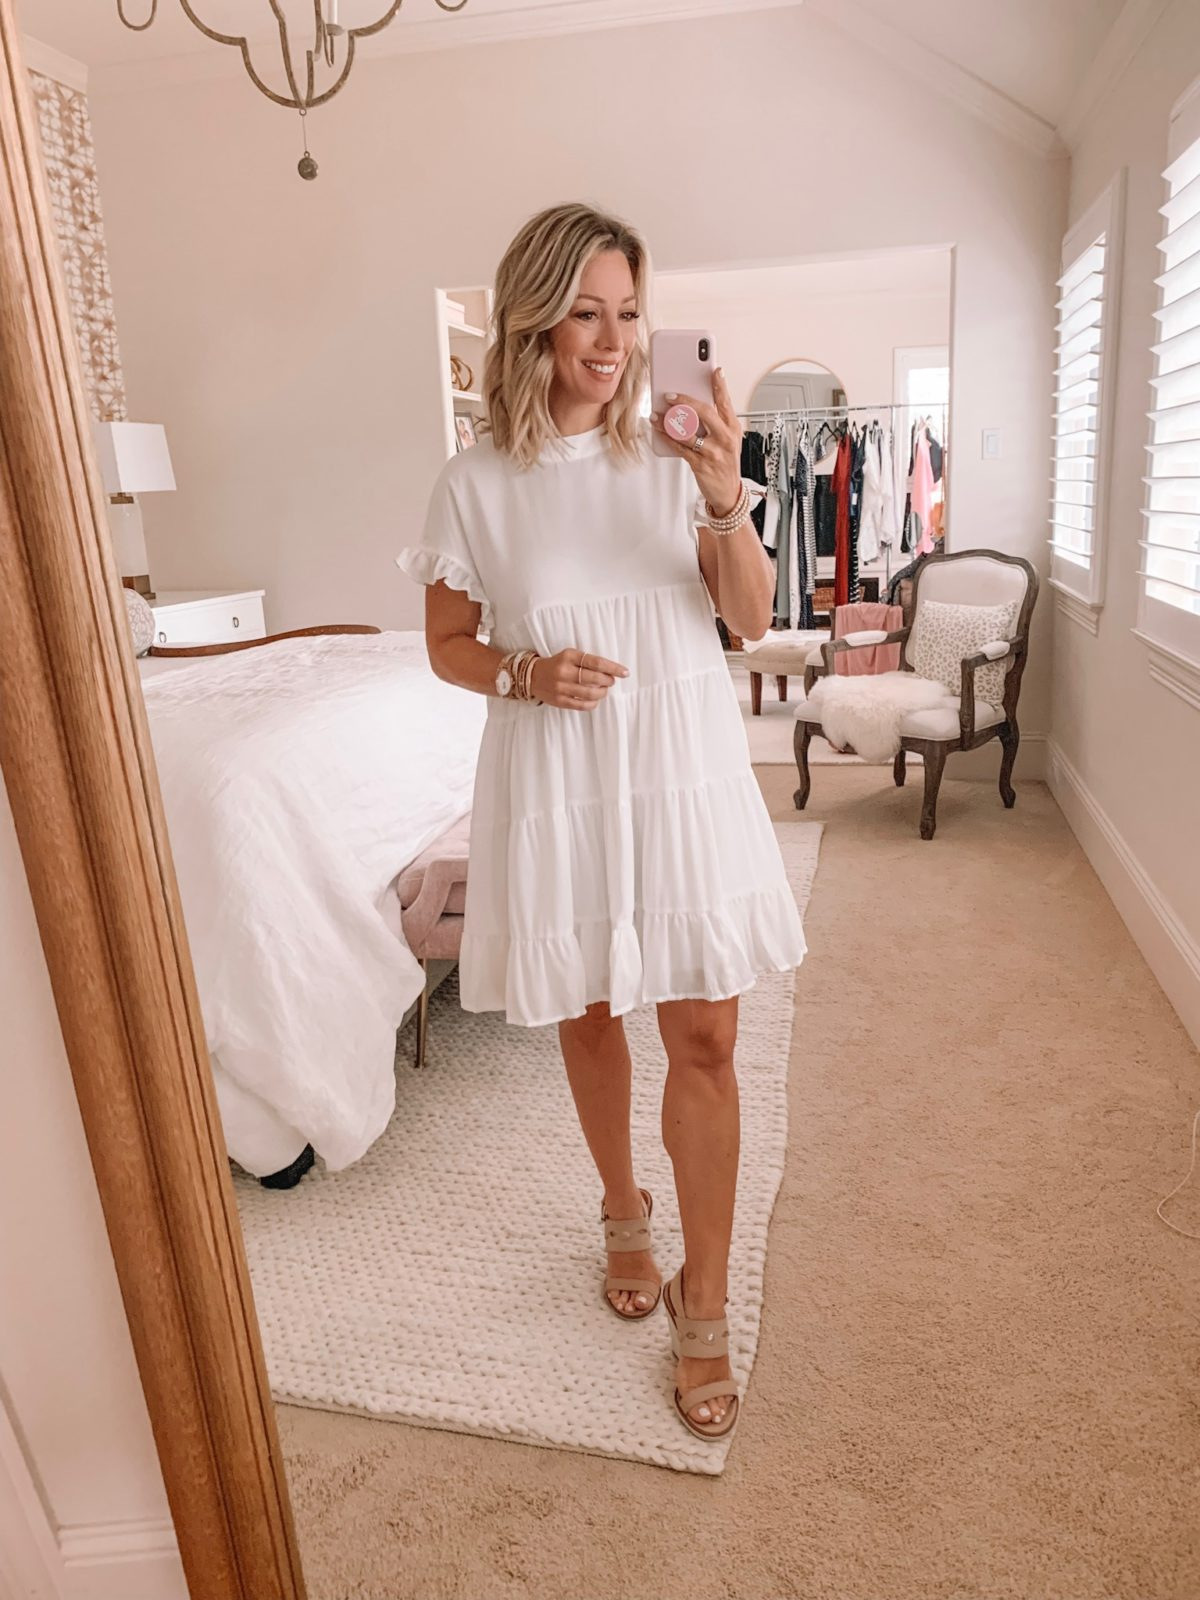 Amazon Fashion Haul - Short Sleeve White Dress